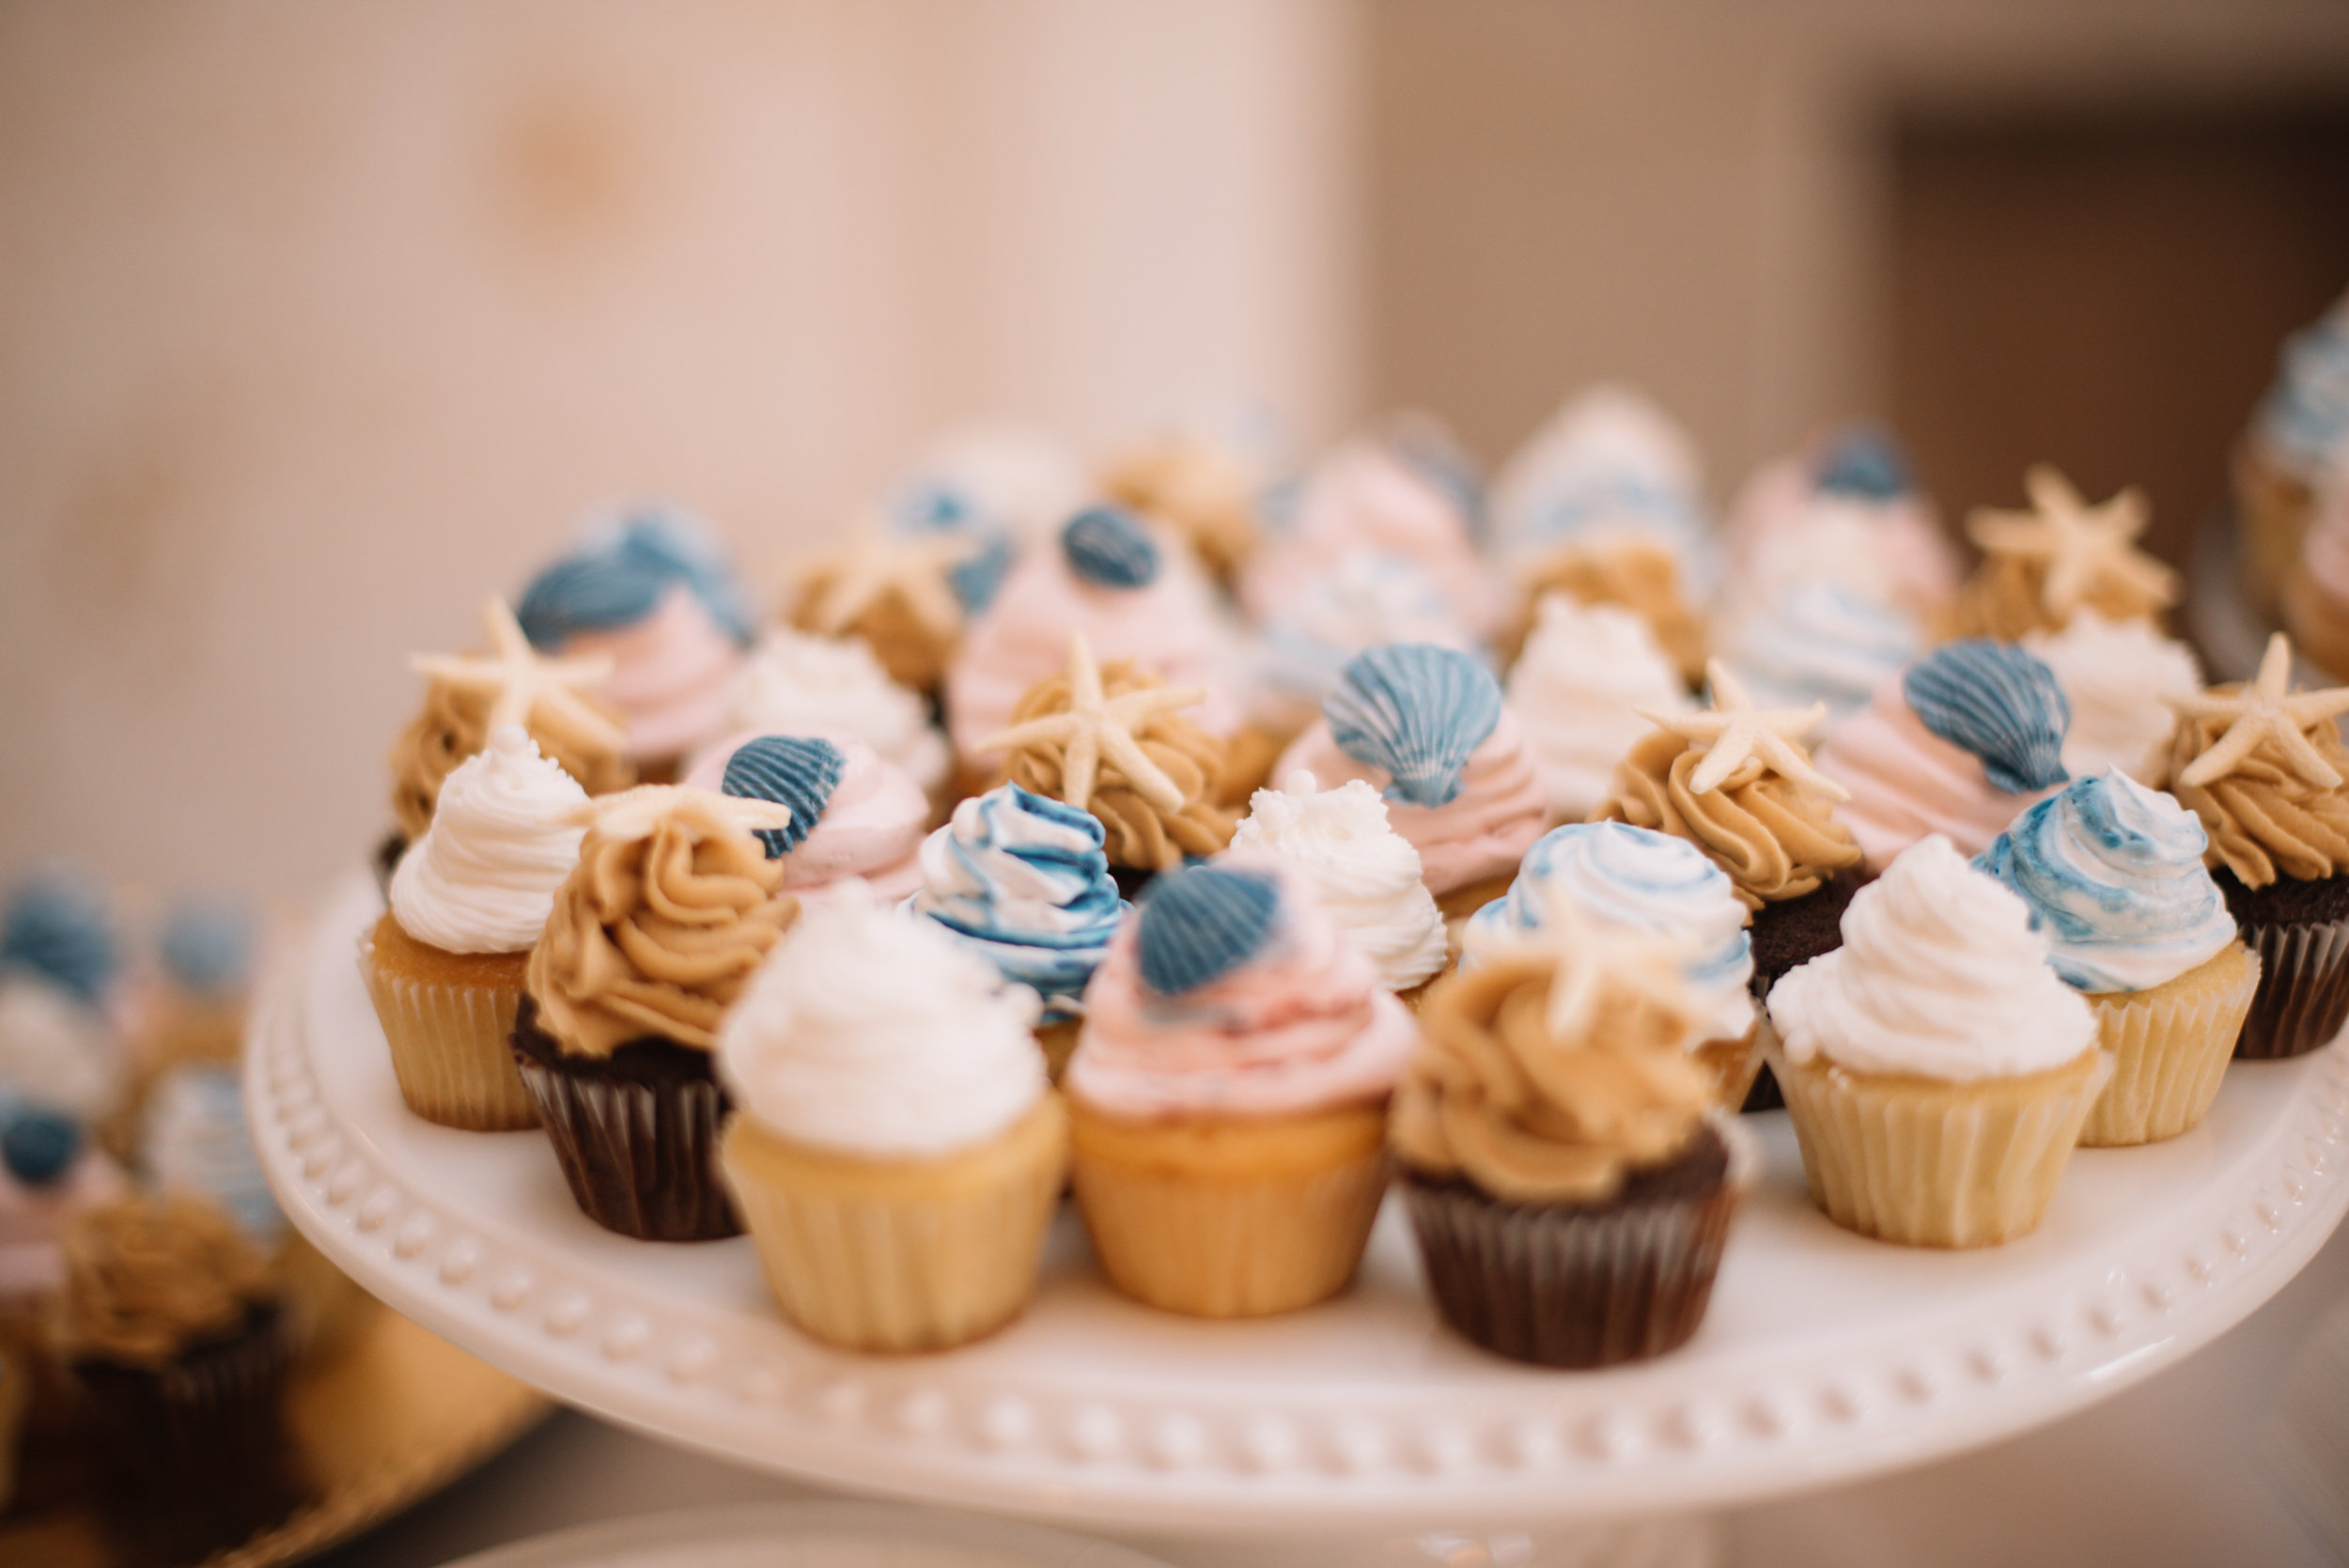 How ADORABLE are all the desserts at this wedding? It was hard not sneaking a couple off the table!